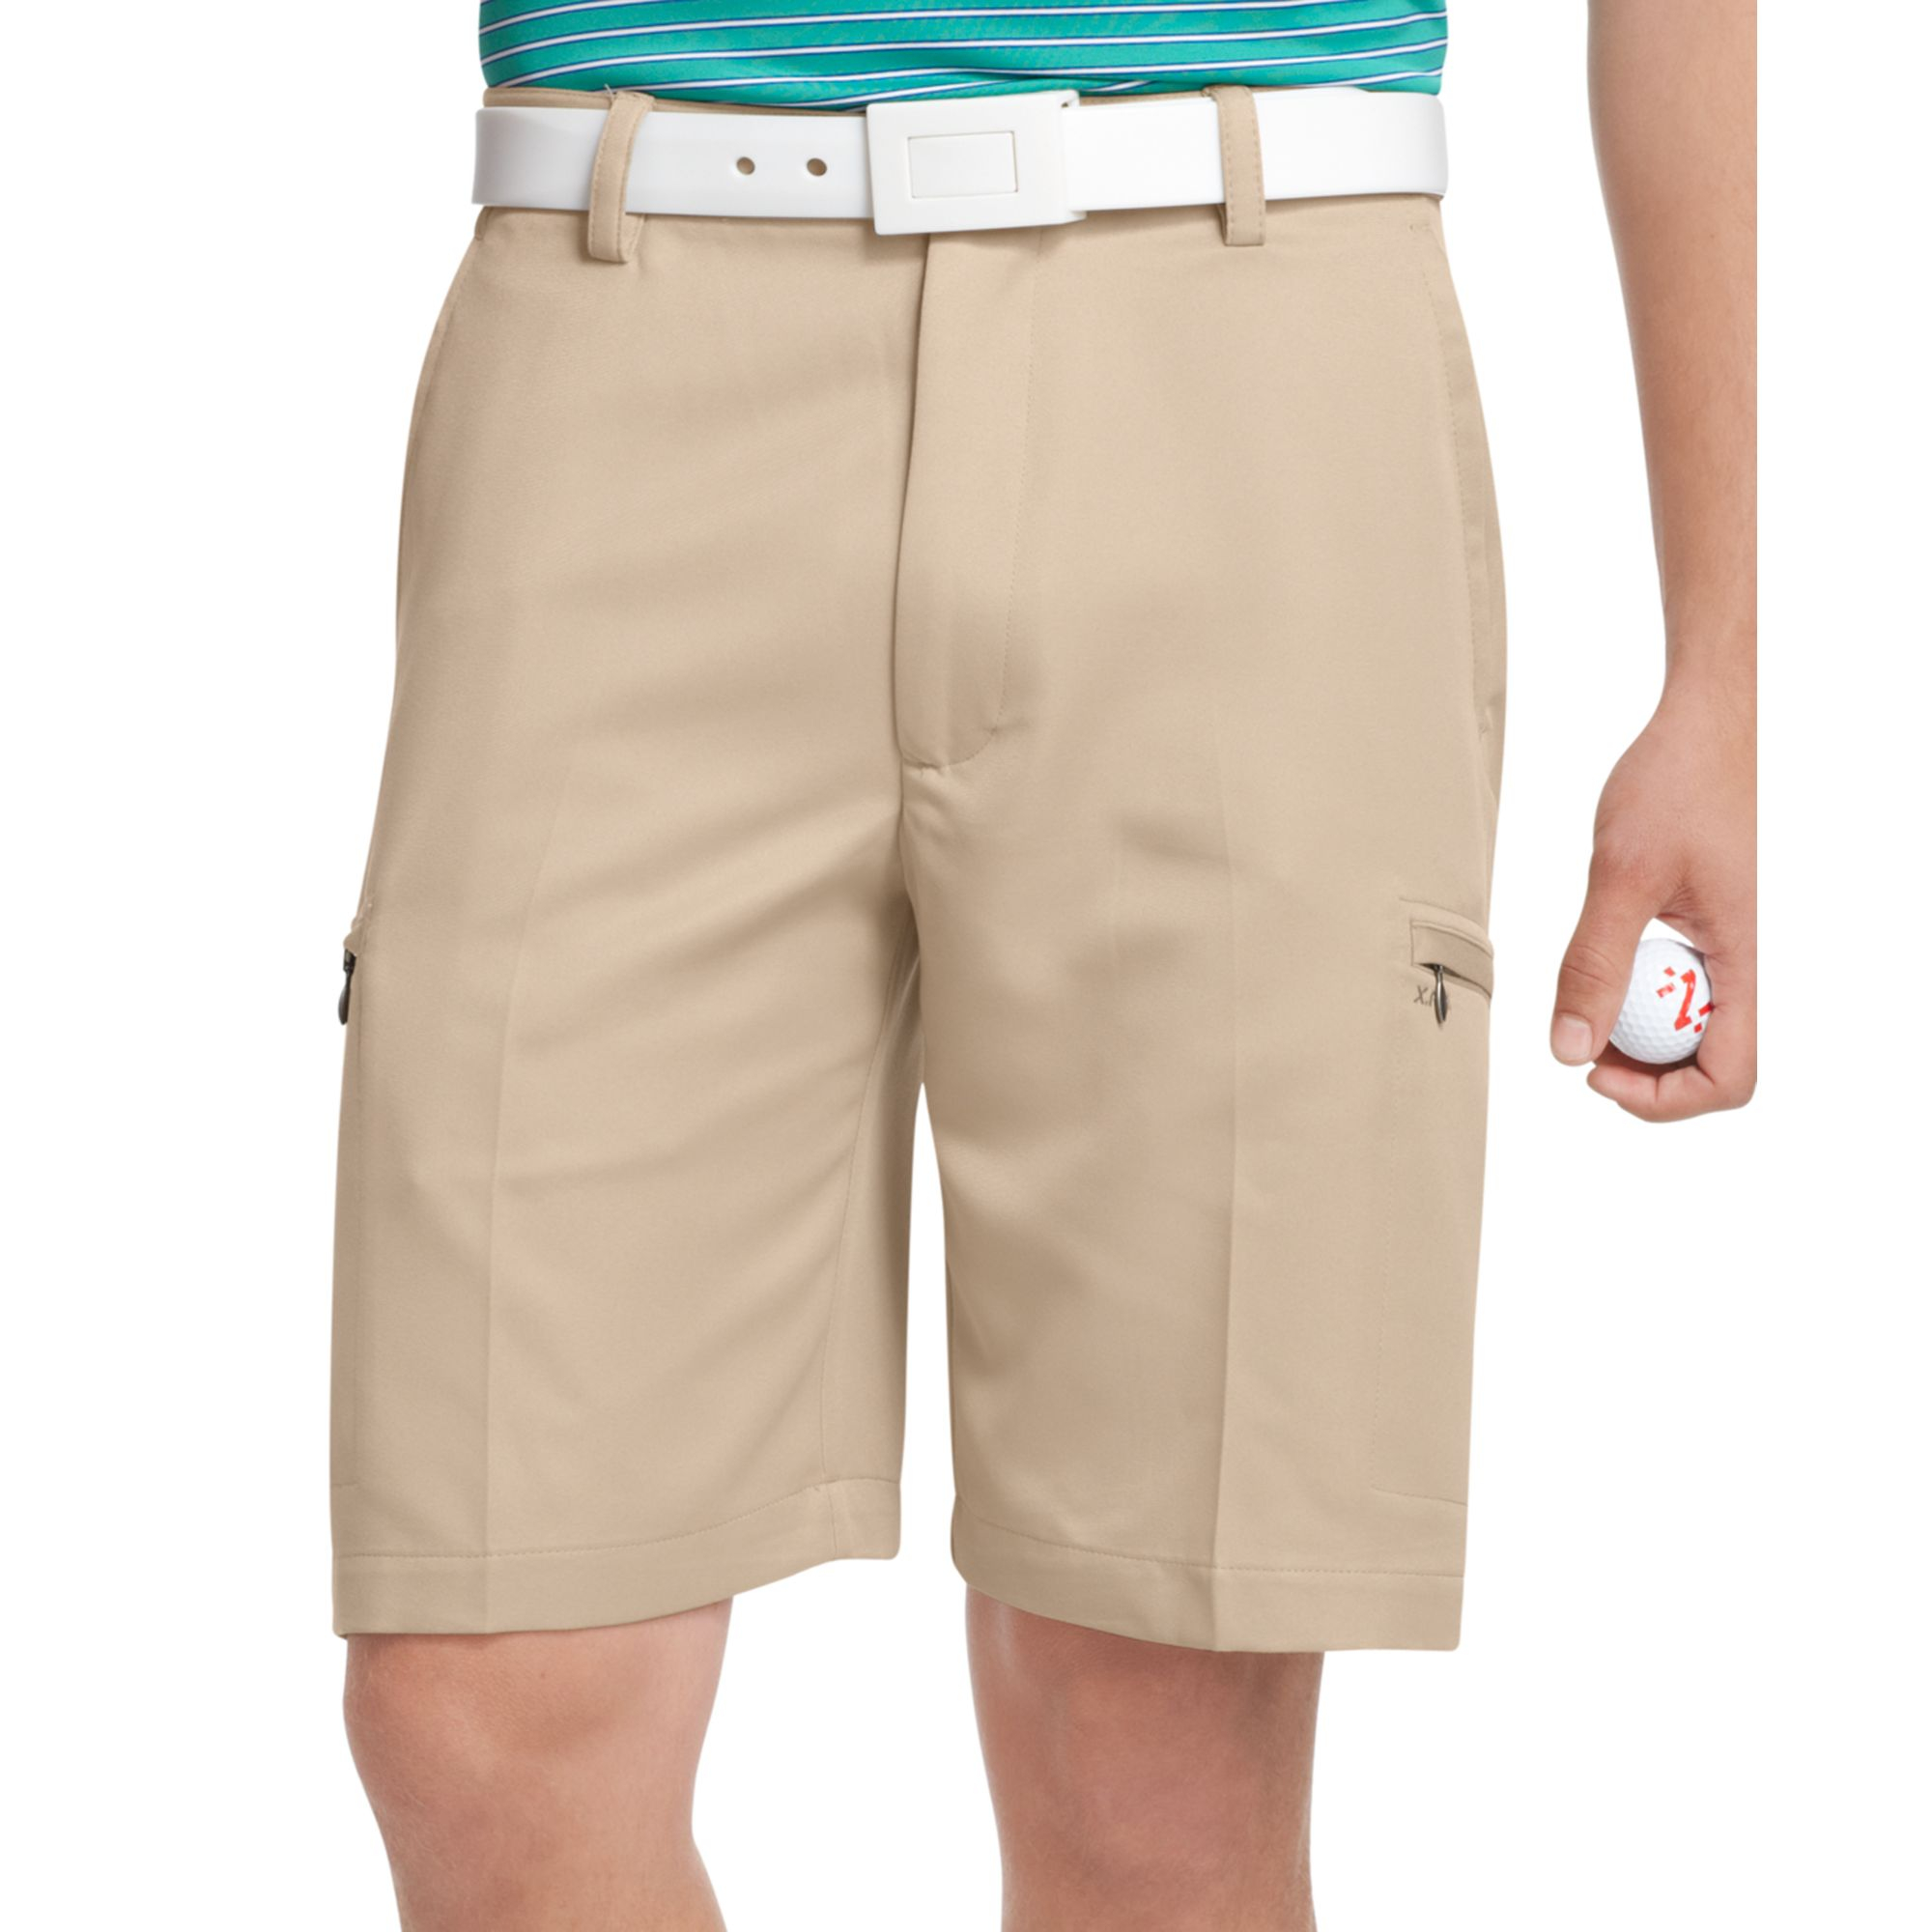 Khaki Golf Shorts - The Else